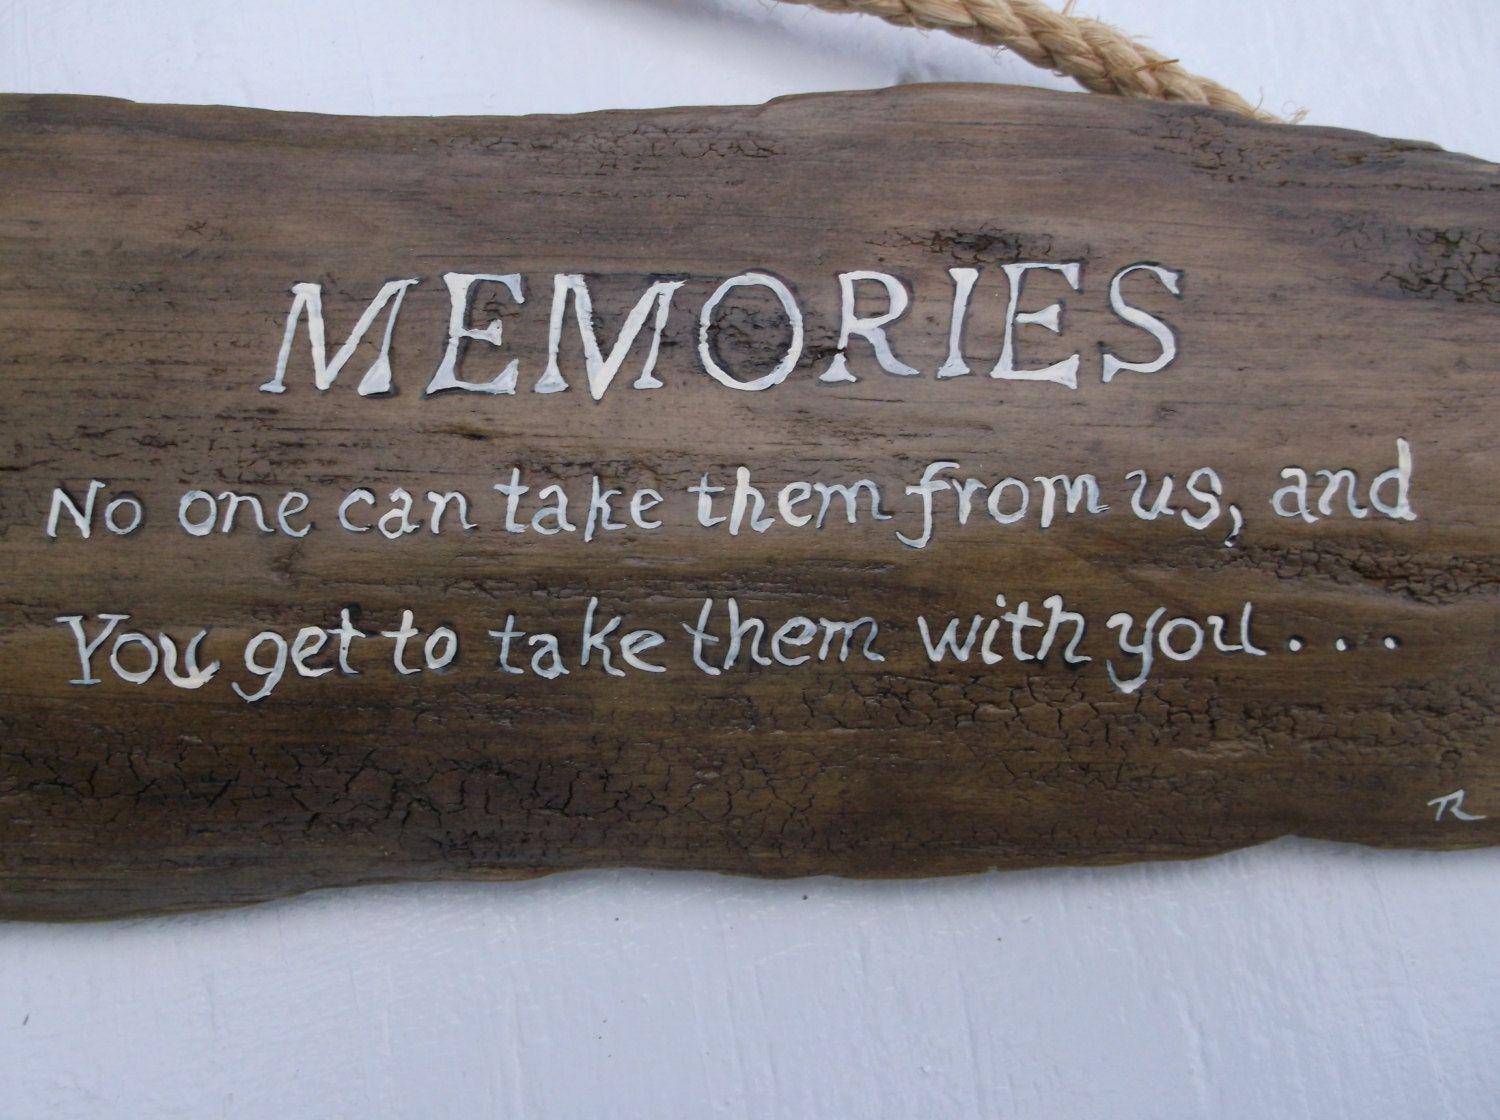 Memories on driftwood - Rustic wooden boat and flowers - Original poem and artwork by Drifted Art - Beach decor - Coastal decor, Rustic Sign…